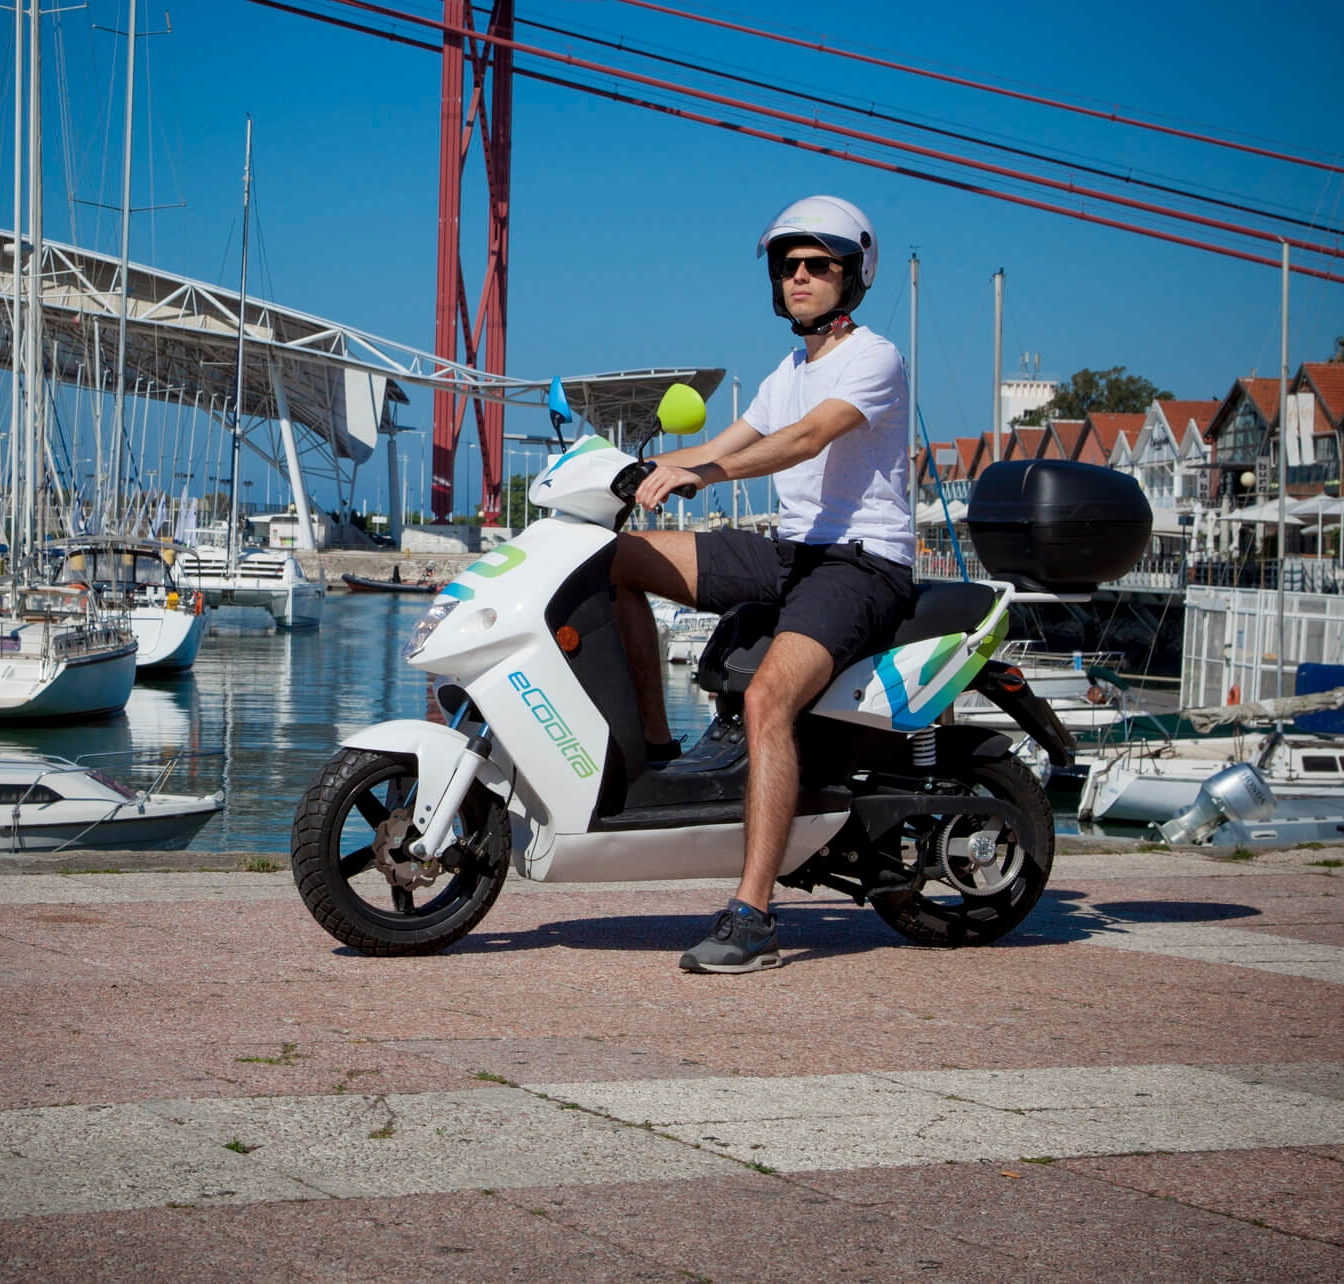 37+ million km - ELECTRICFEEL USERS HAVE RIDDEN BIKES AND E-SCOOTERS THE EQUIVALENT OF 925 TIMES AROUND THE WORLD.